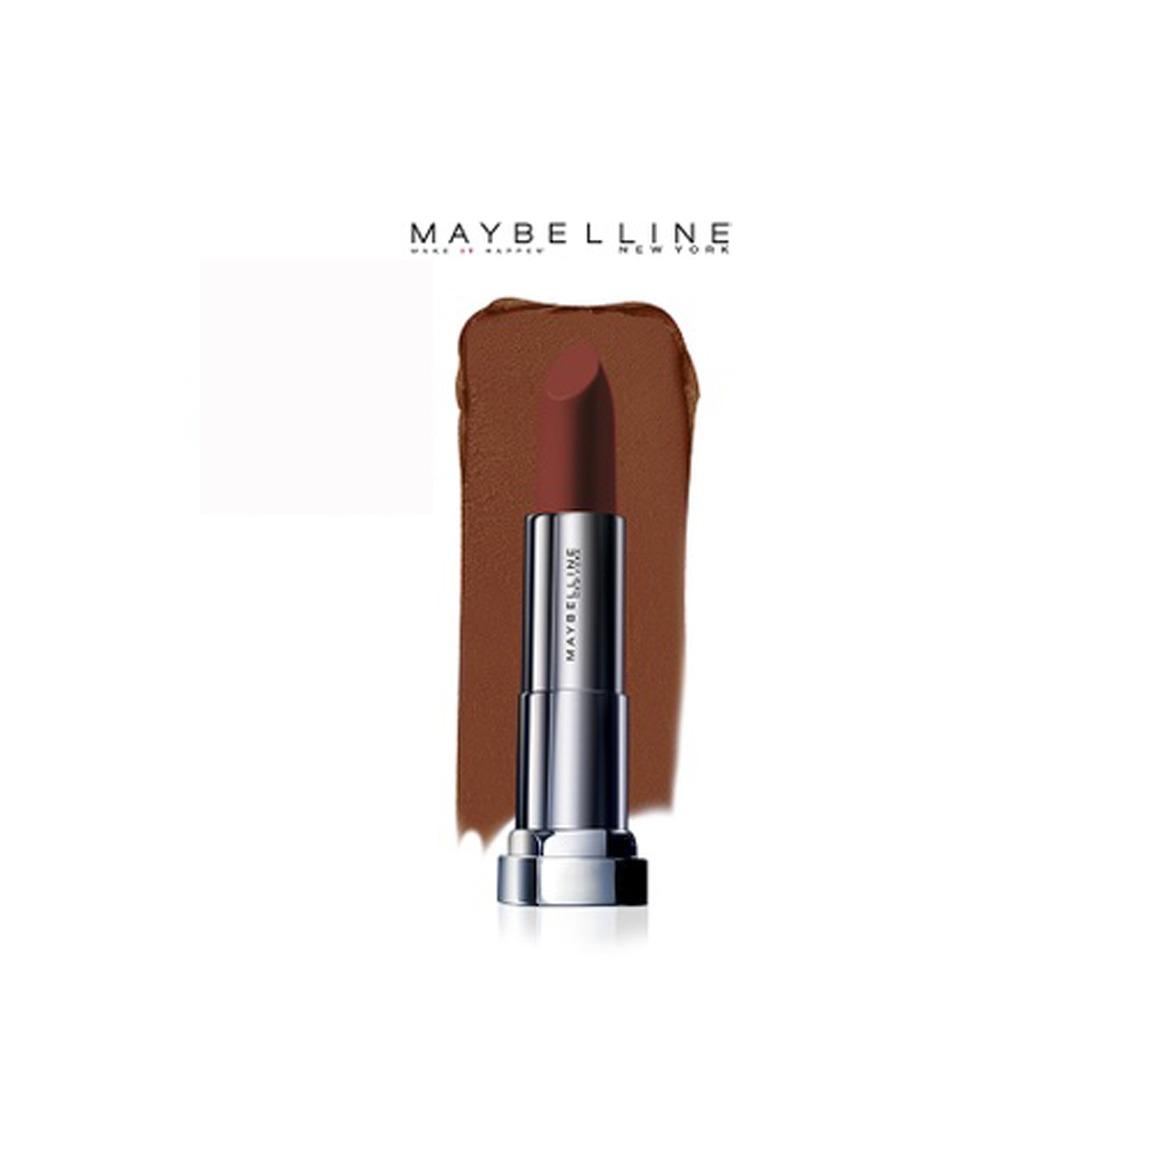 Maybelline Color Sensational Powder Matte - Toasted Brown